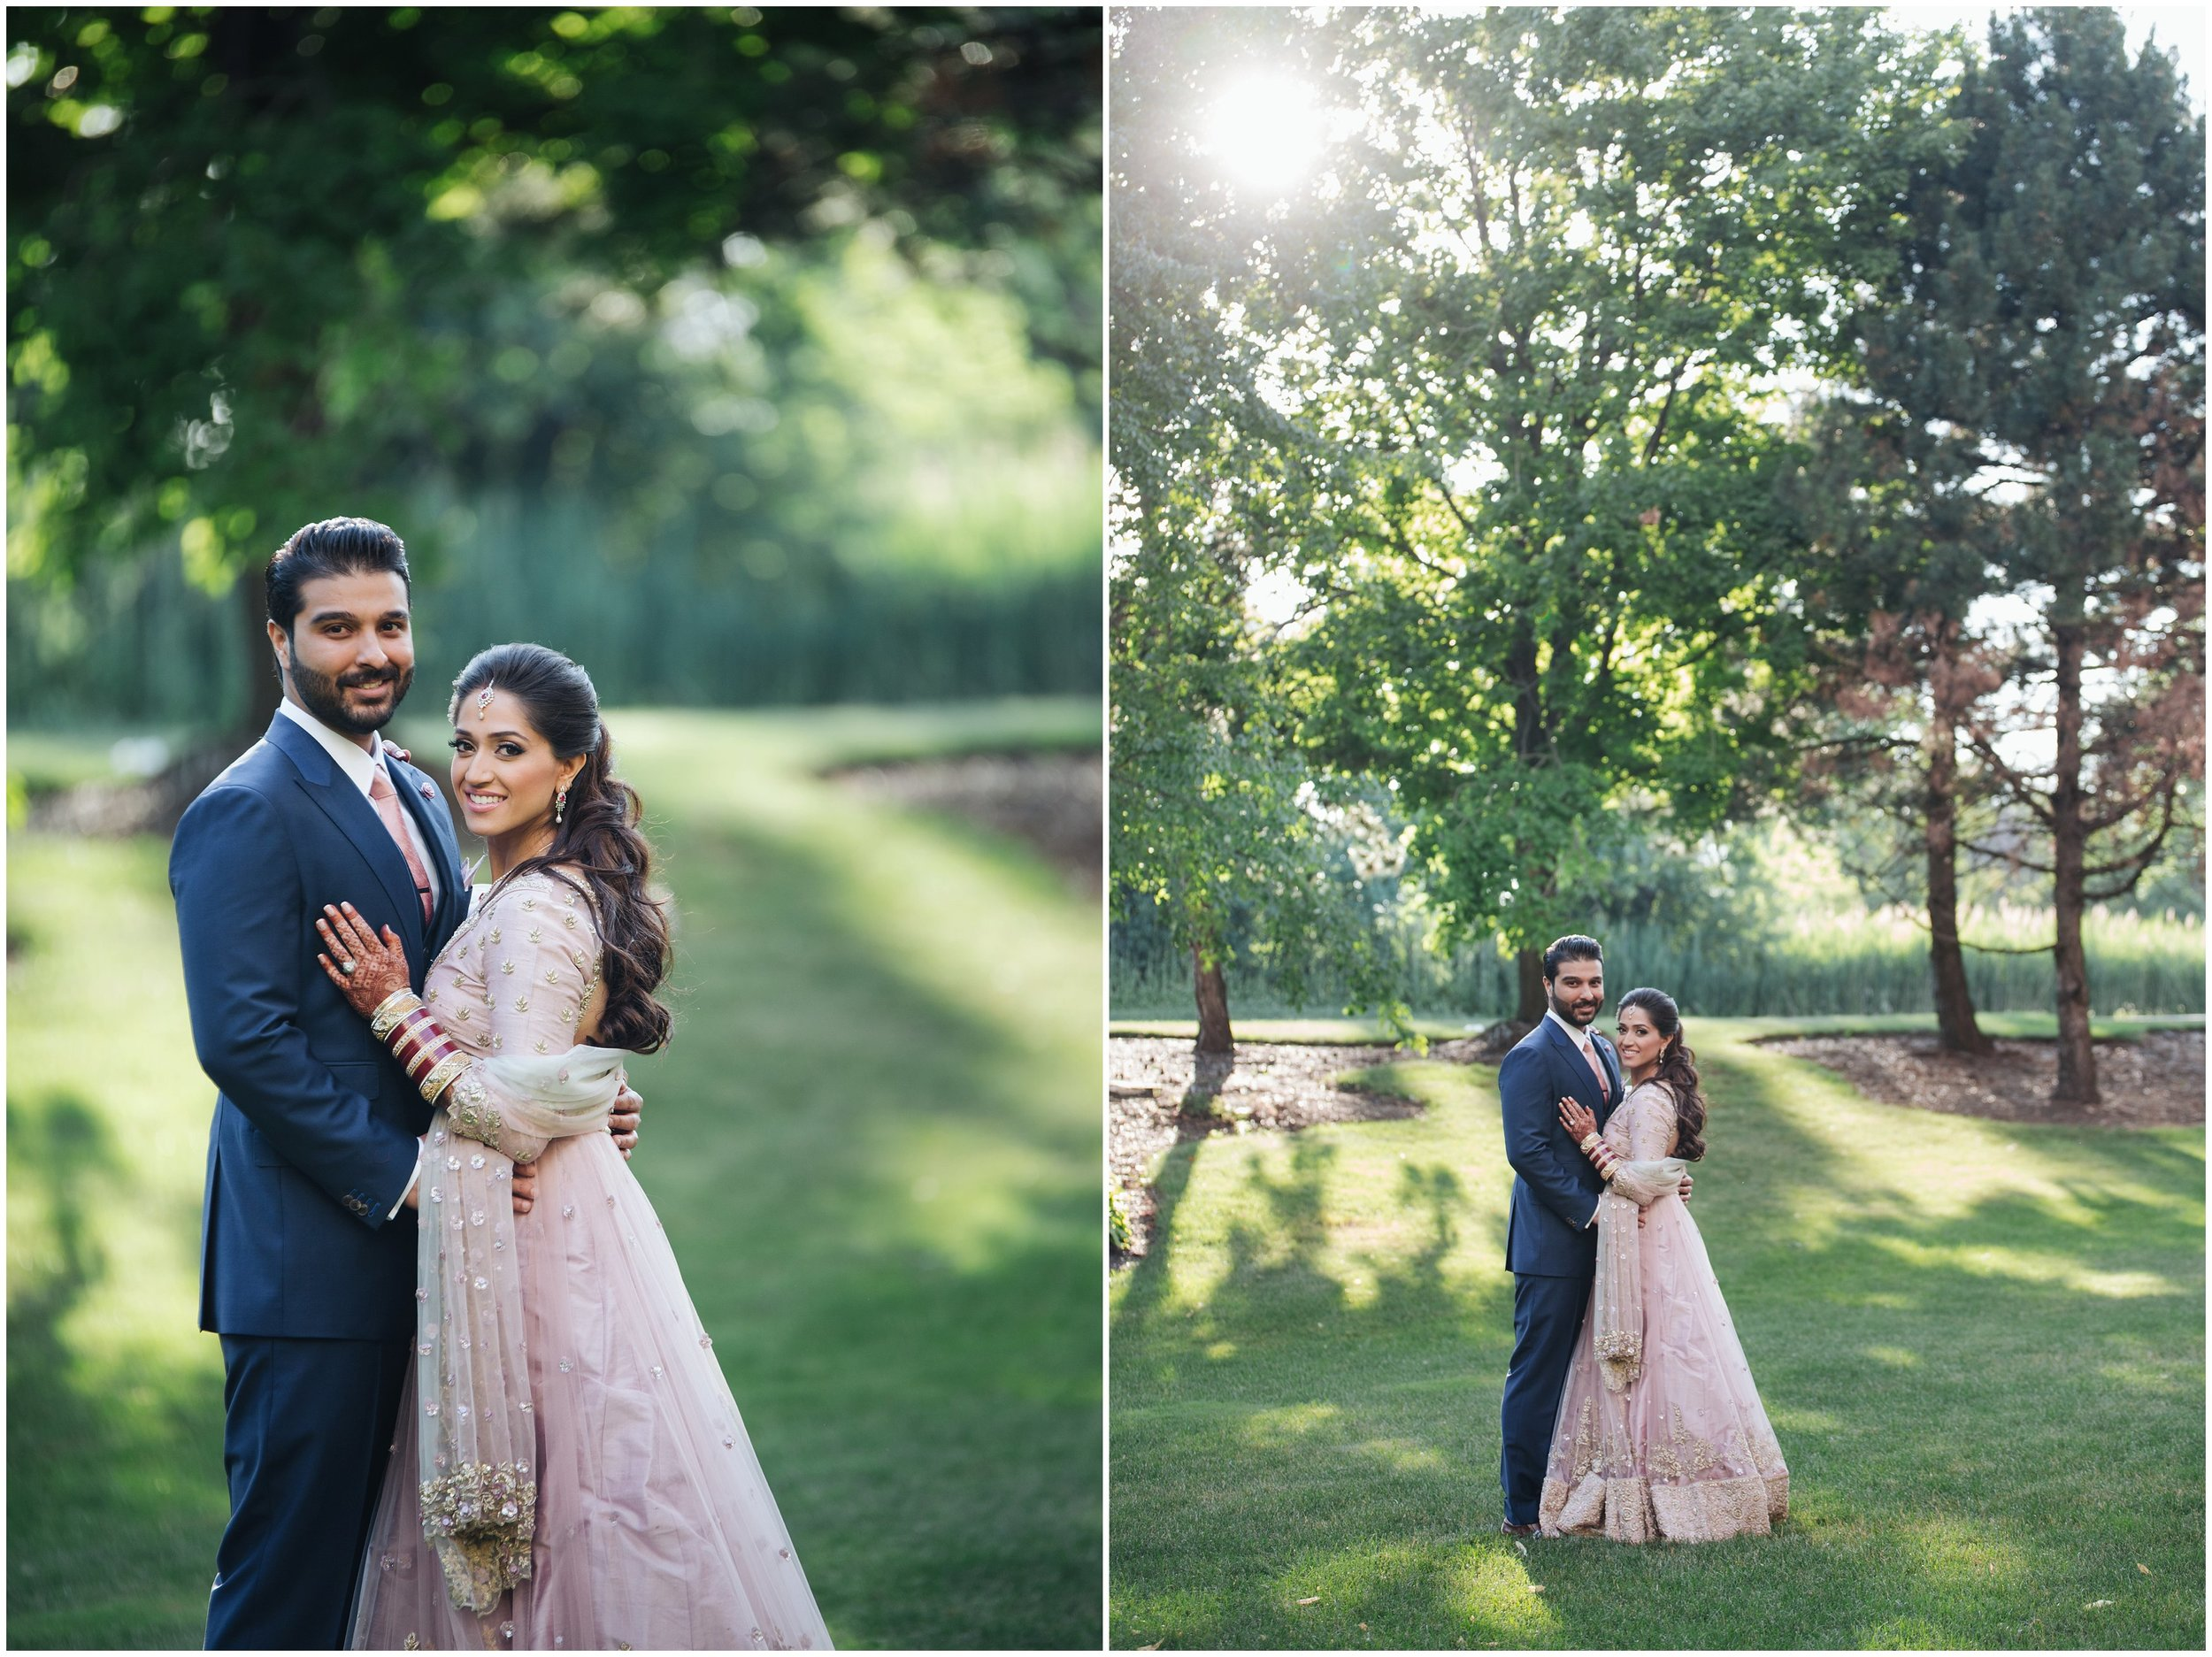 Le Cape Weddings - South Asian Wedding in Illinois - Tanvi and Anshul -1613_LuxuryDestinationPhotographer.jpg